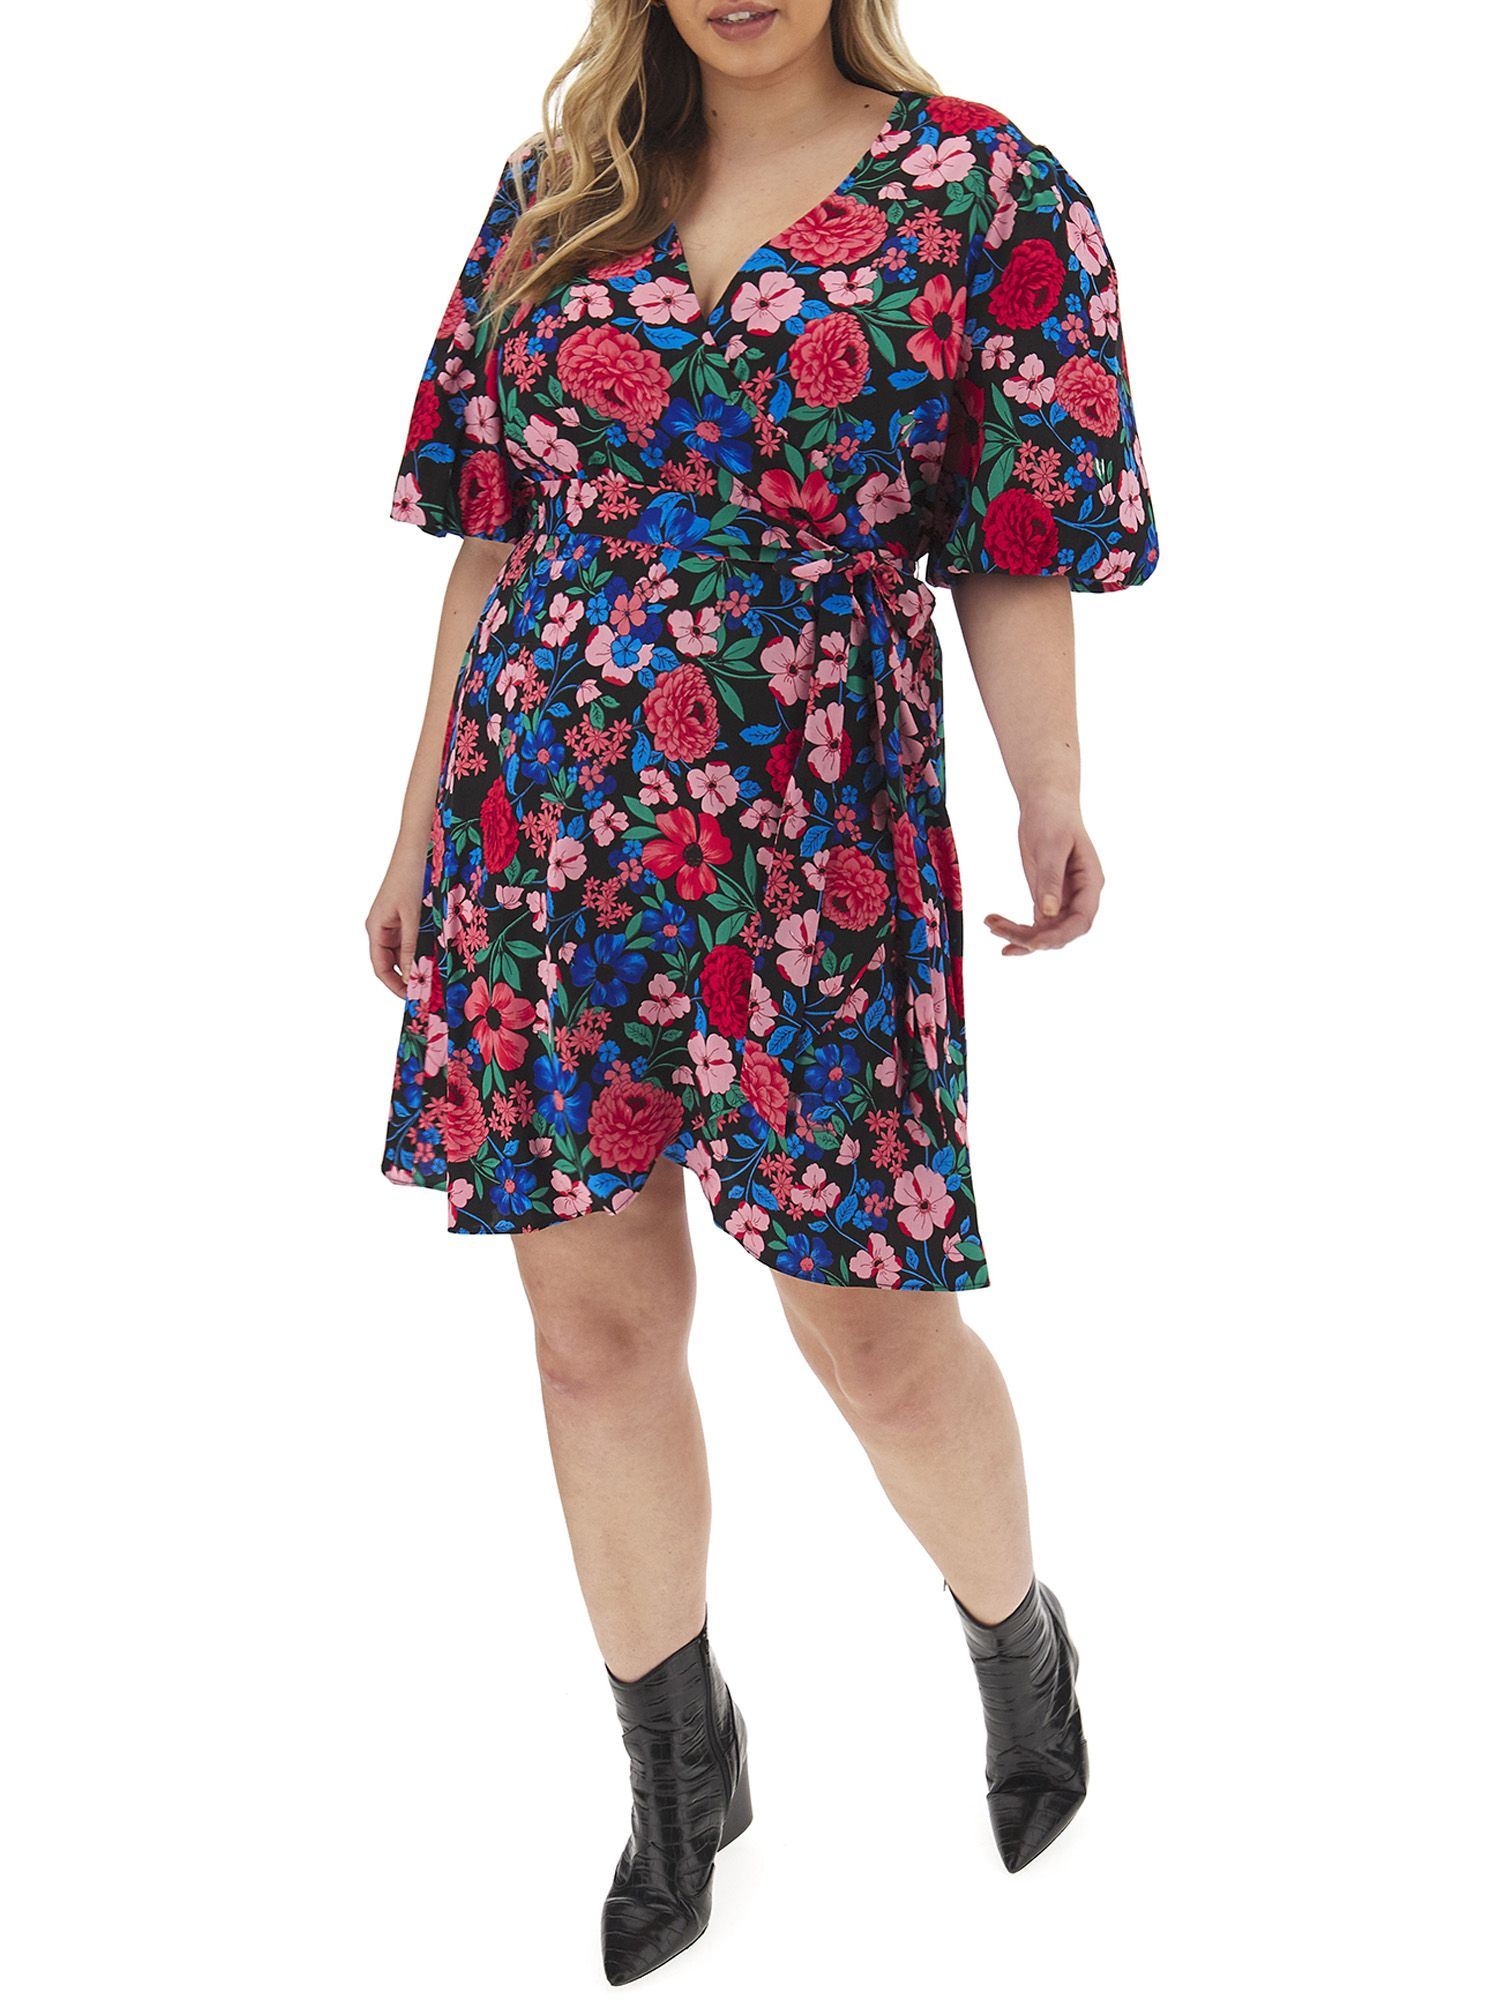 Free 2 Day Shipping On Qualified Orders Over 35 Buy Simply Be Women S Plus Size Puff Sleeve Wrap Skater Dress At Walmar Skater Dress Wrap Dress Short Dresses [ 2000 x 1500 Pixel ]